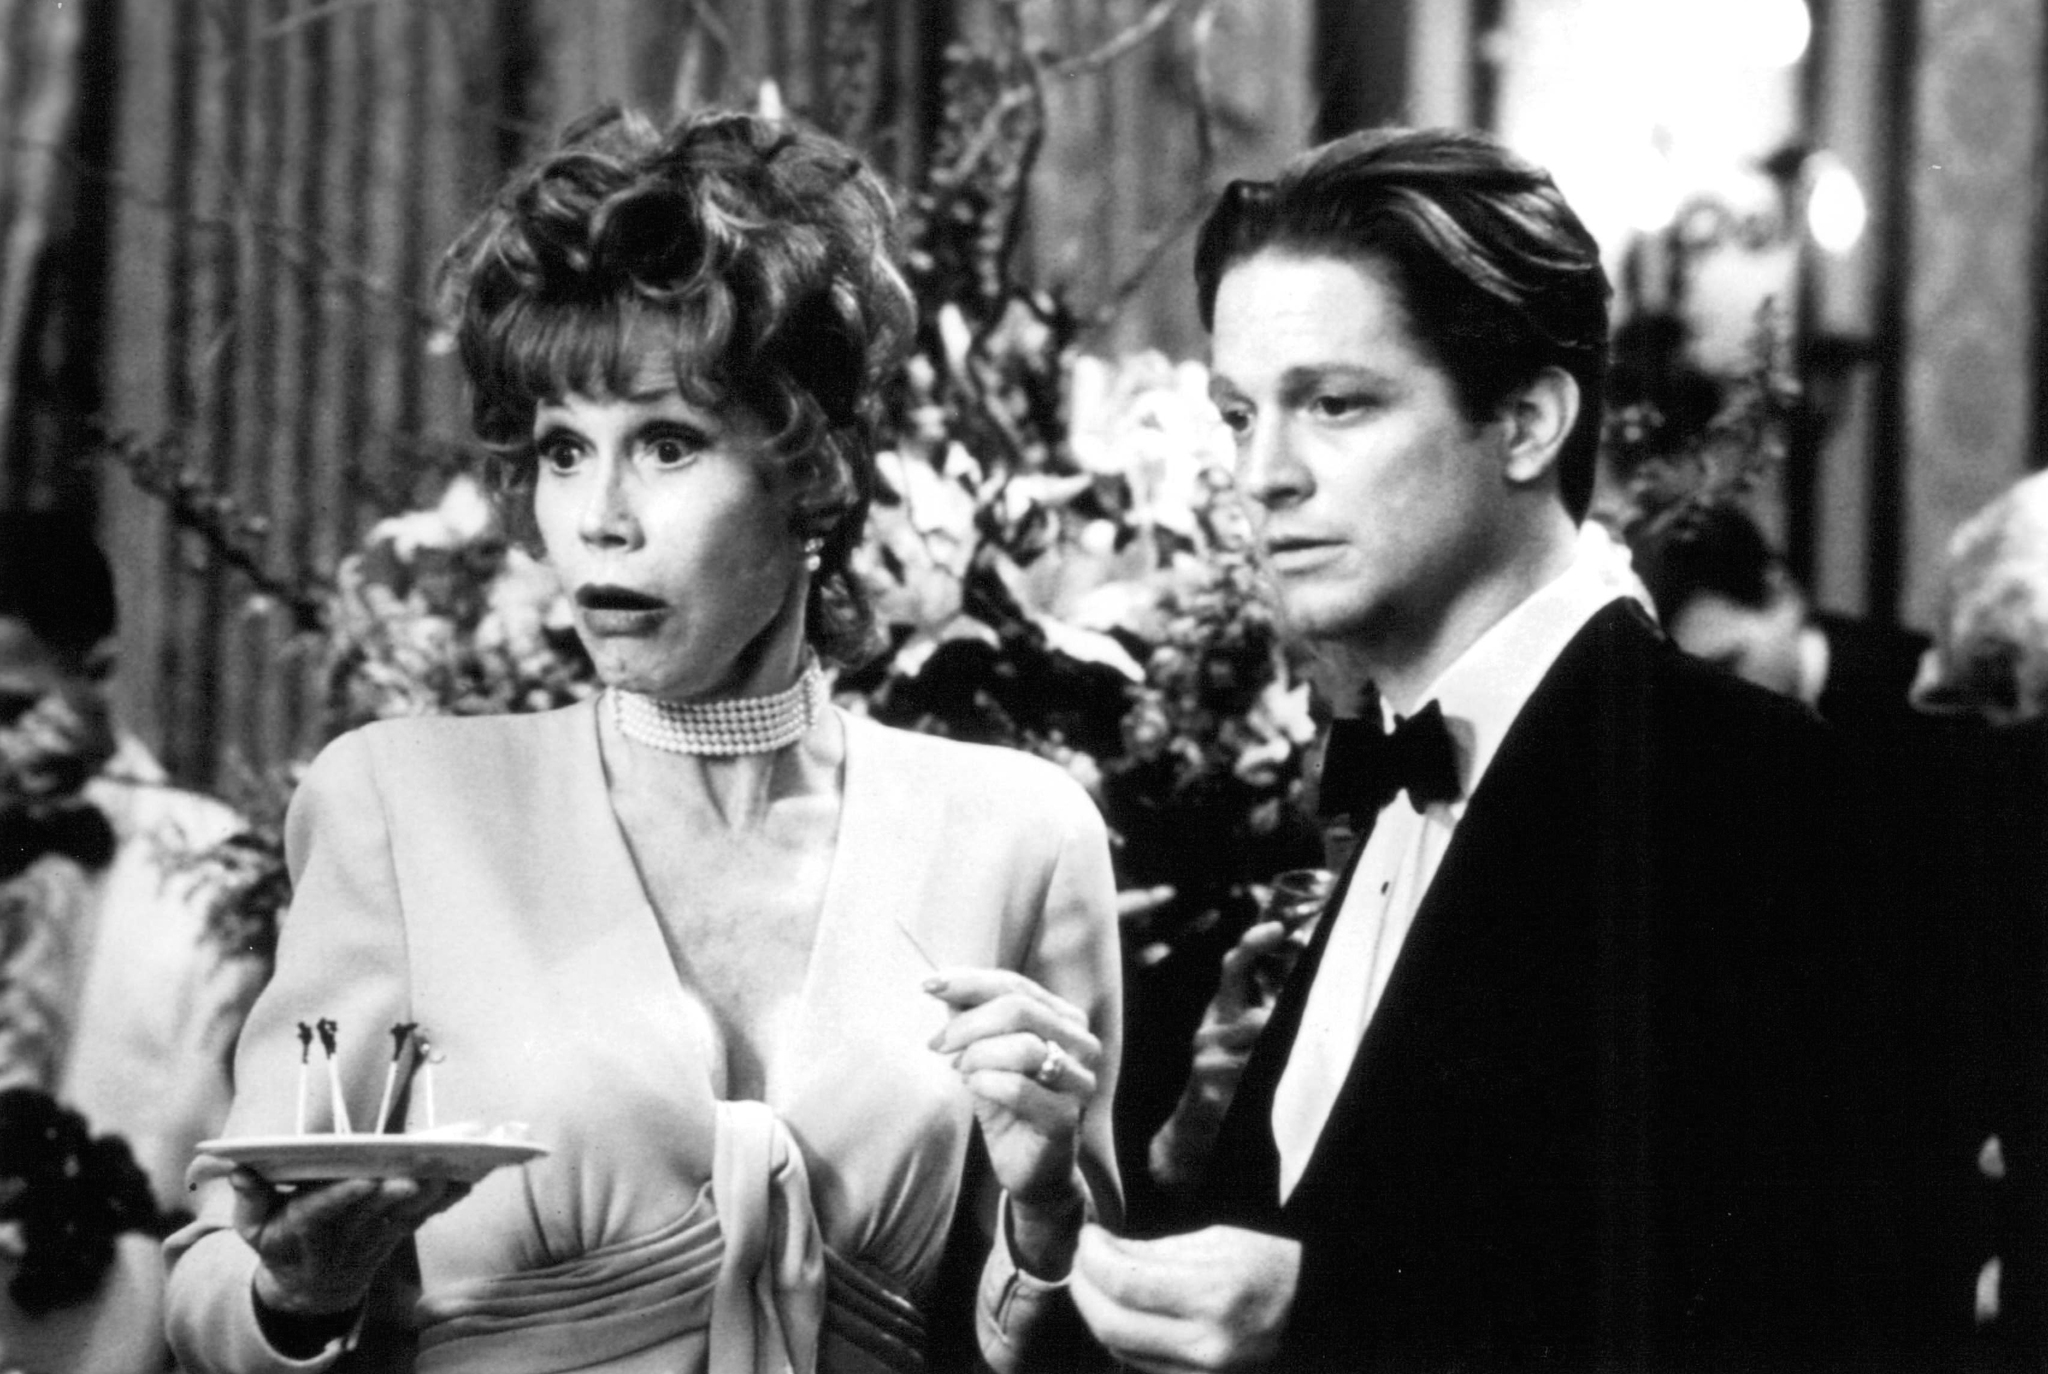 Eric Stoltz and Mary Tyler Moore in Keys to Tulsa (1997)